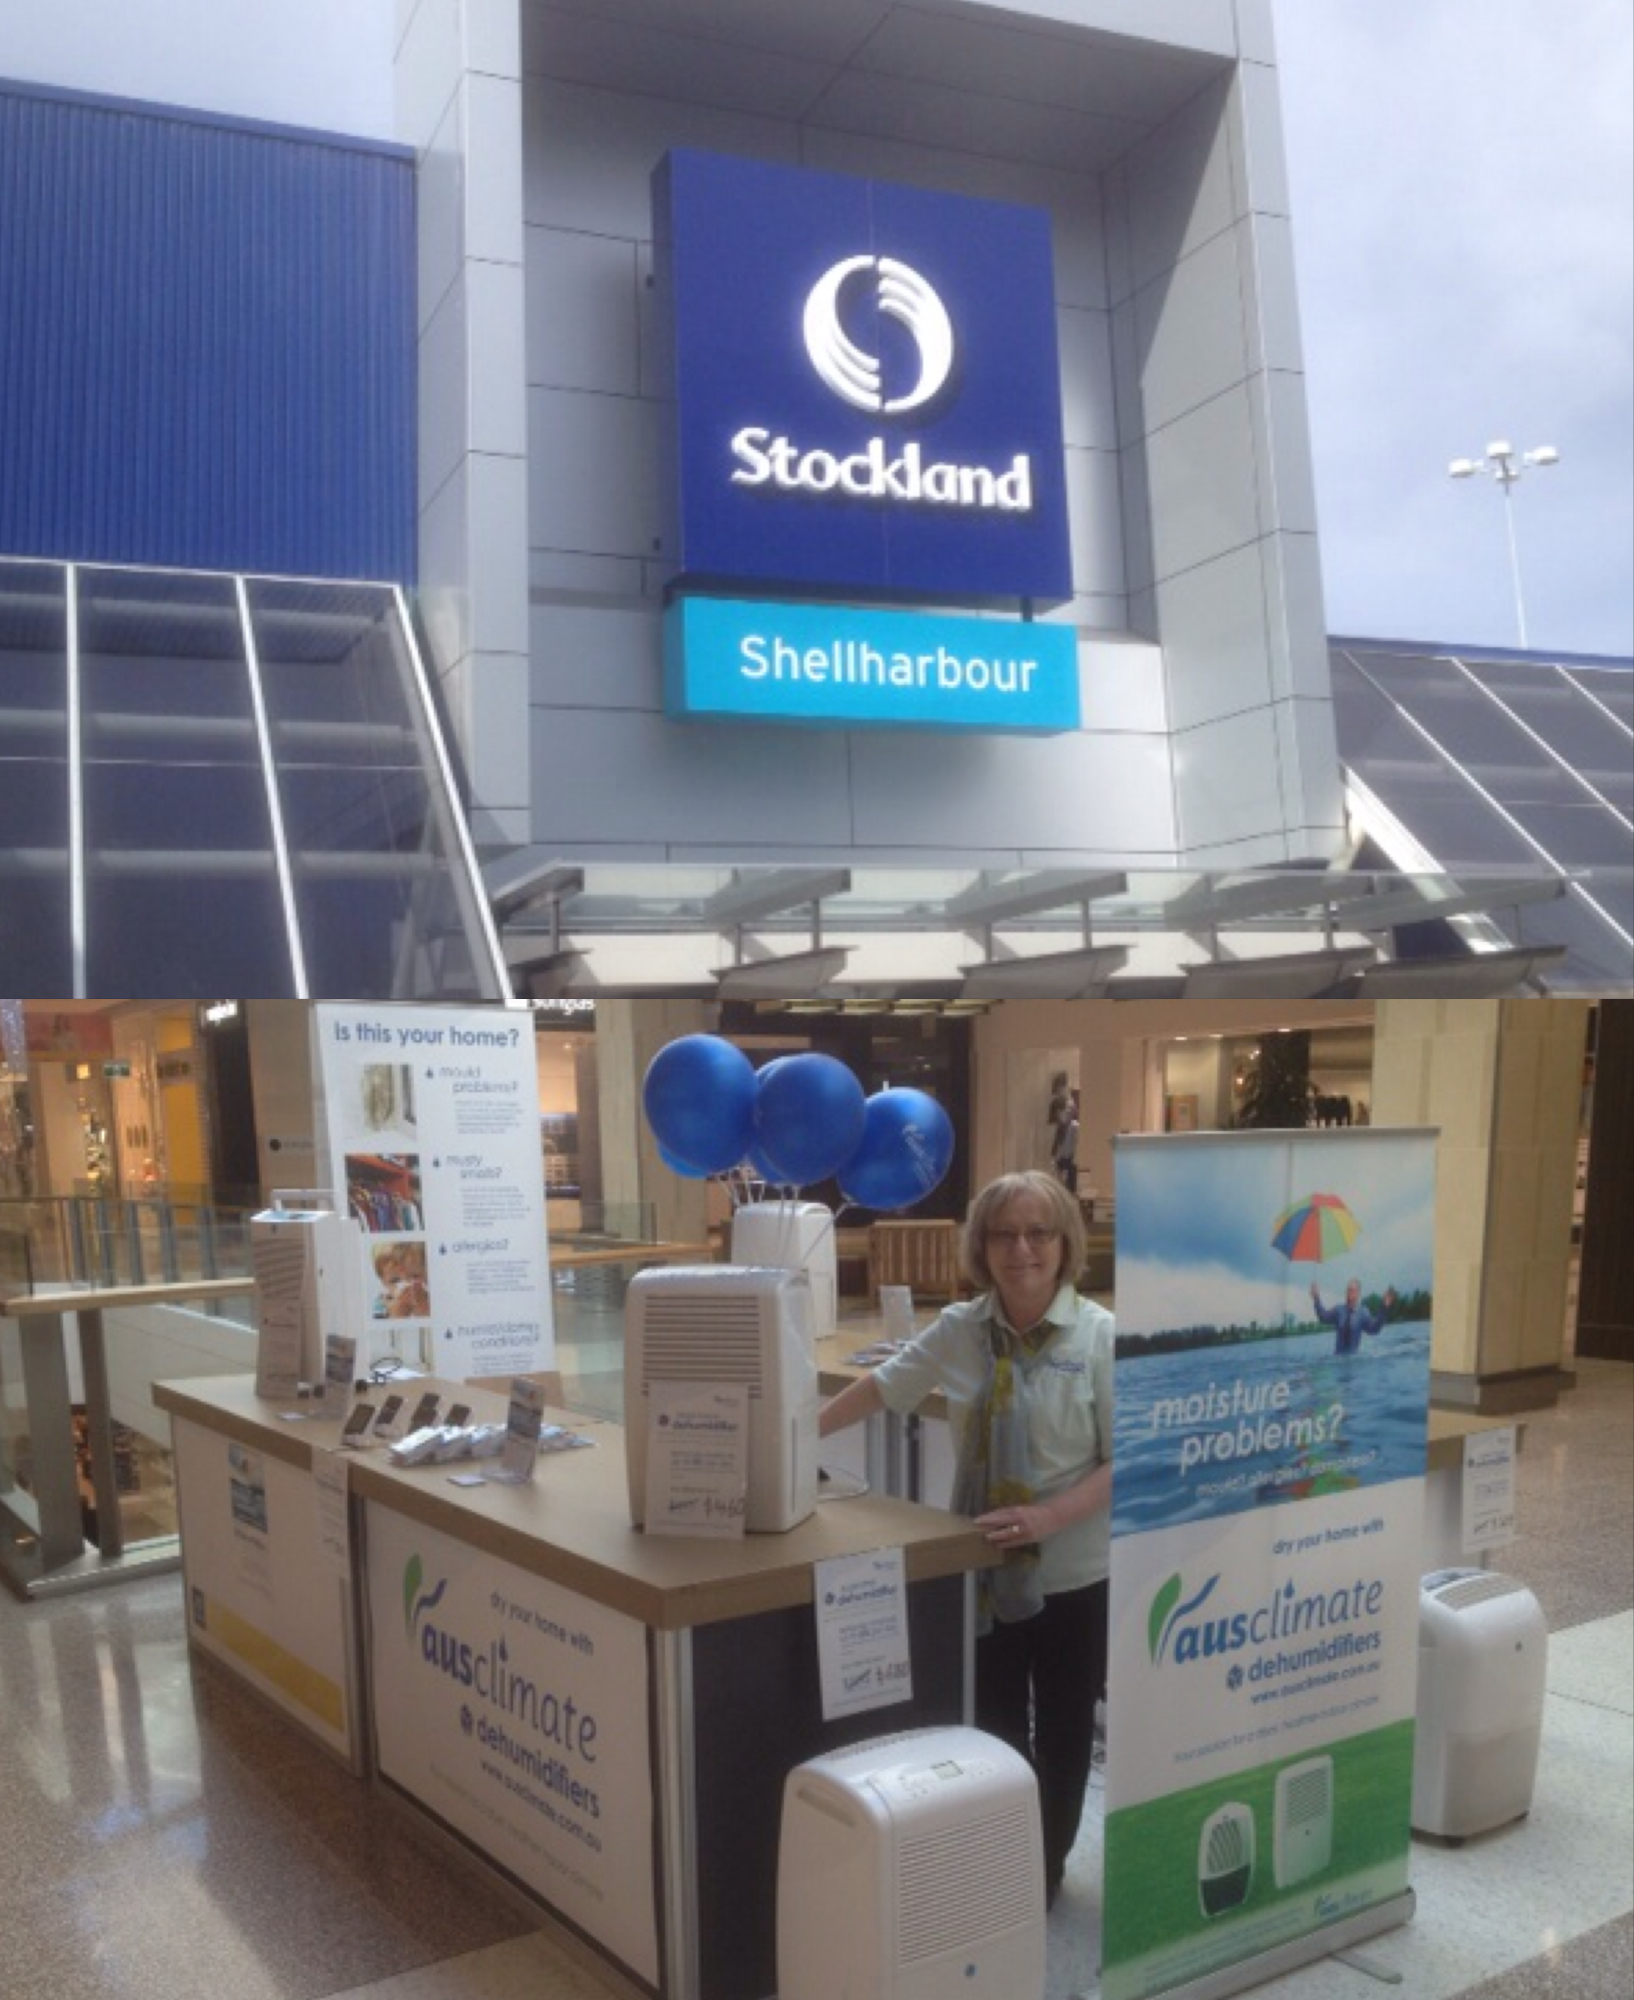 Stocklands Shellharbour Shopping Centre - Wollongong